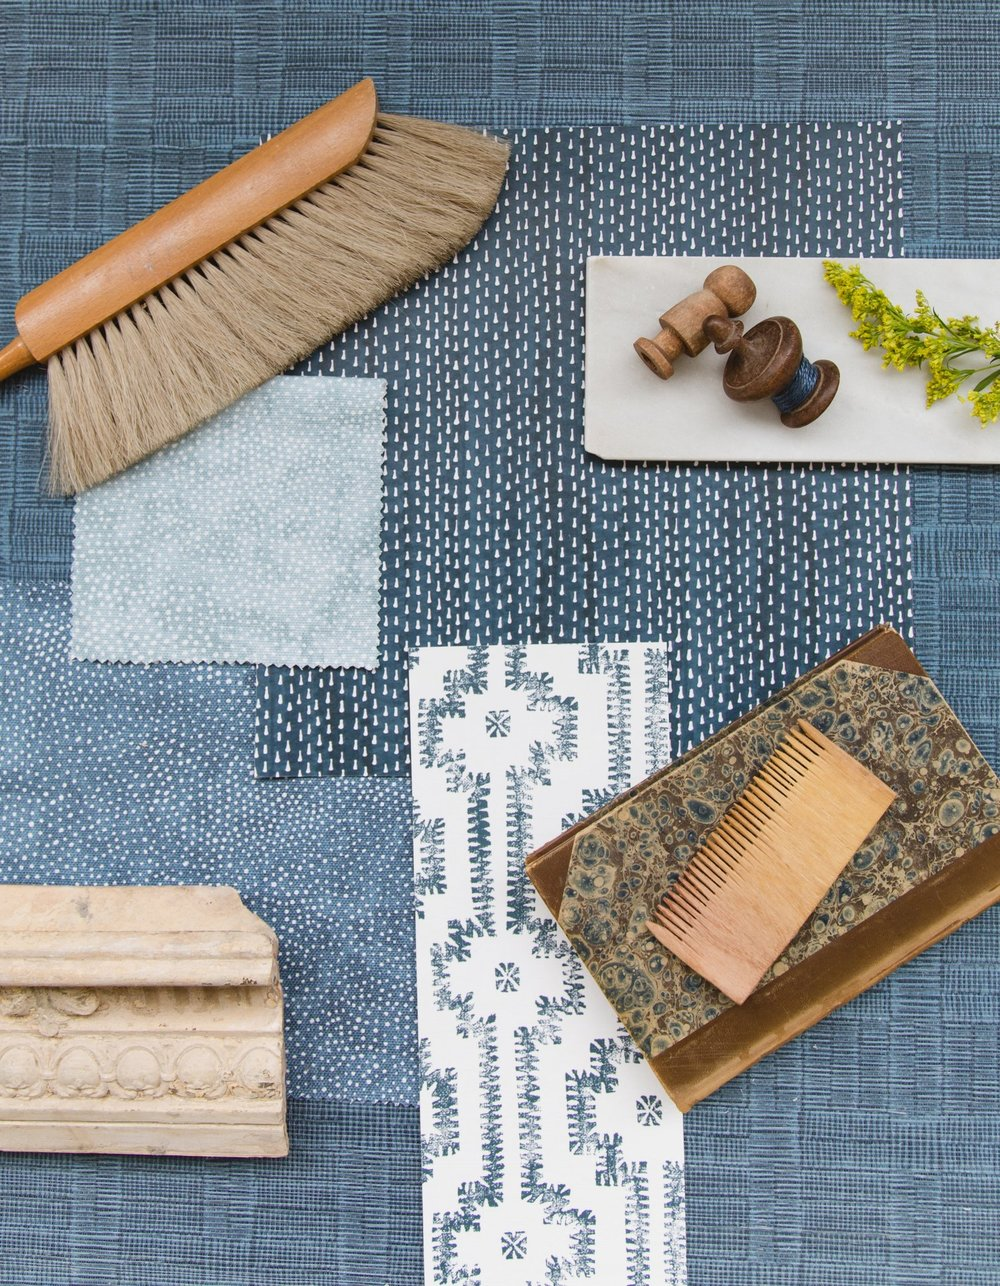 Maresca Textiles and Wallpaper